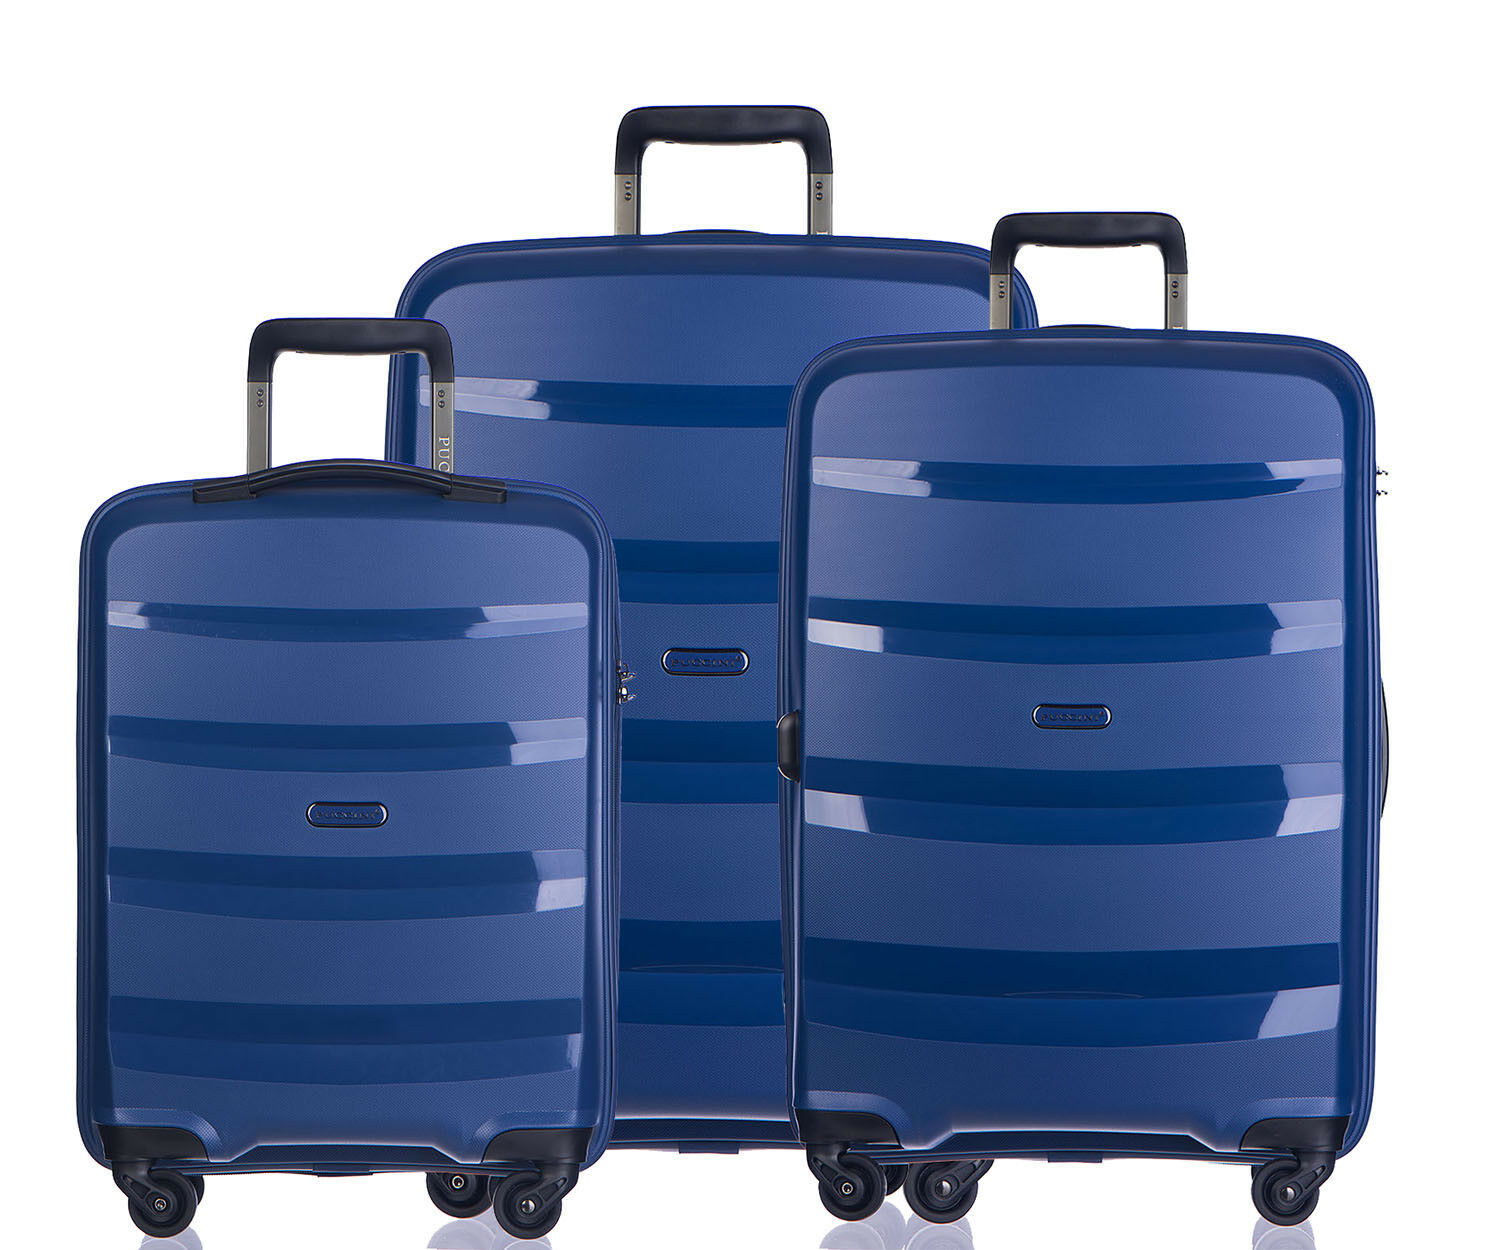 Valise de Voyage Voyage Voyage valise coque rigide Trolley Puccini ® Acapulco 3 Tailles 7 Couleurs 1514bf